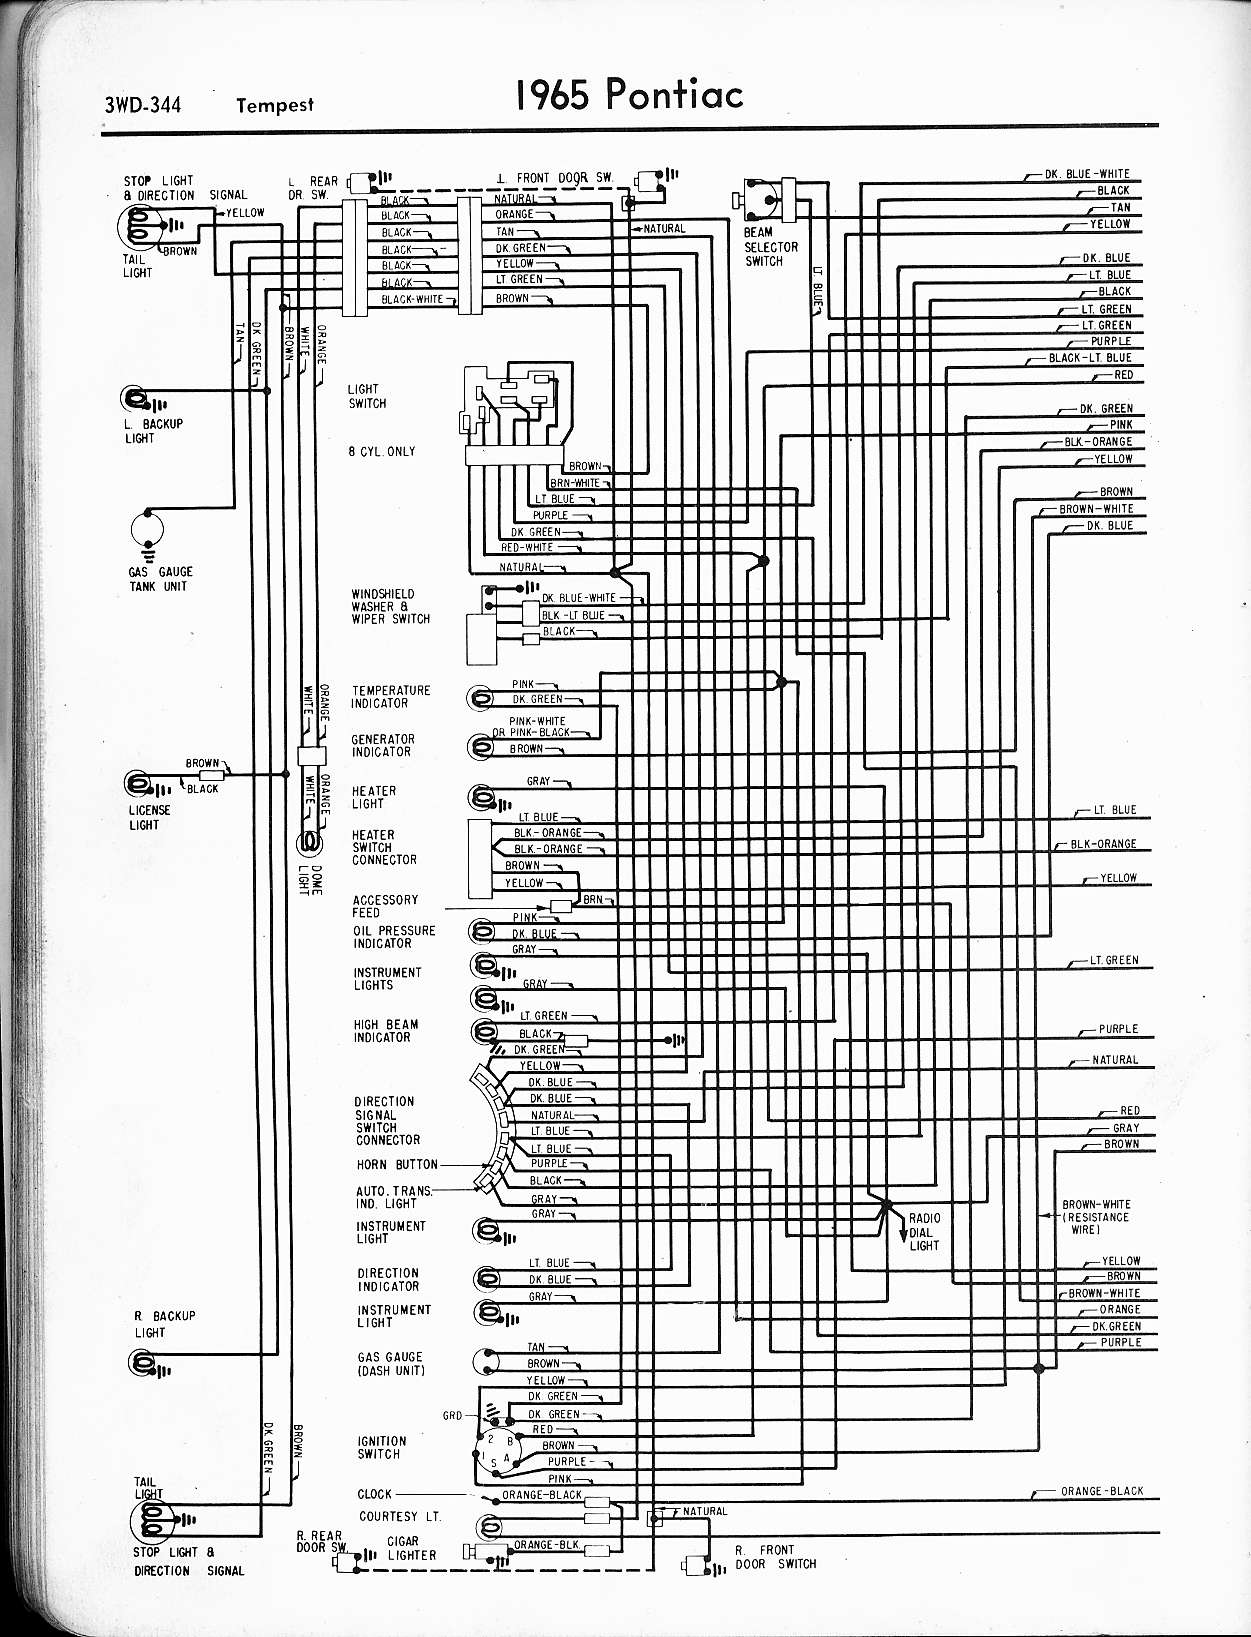 92e8 68 pontiac gto wiring diagram | wiring resources  wiring resources